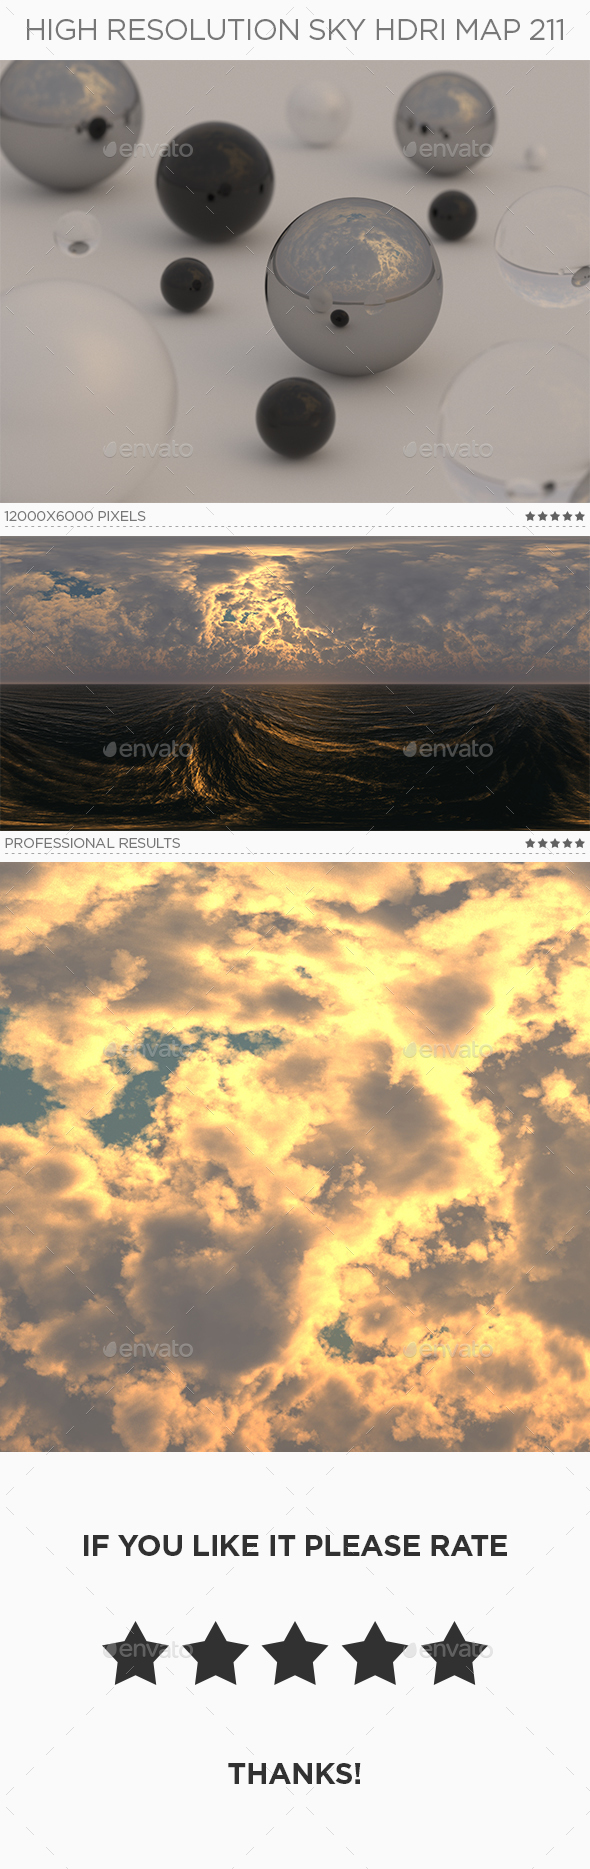 High Resolution Sky HDRi Map 211 - 3DOcean Item for Sale